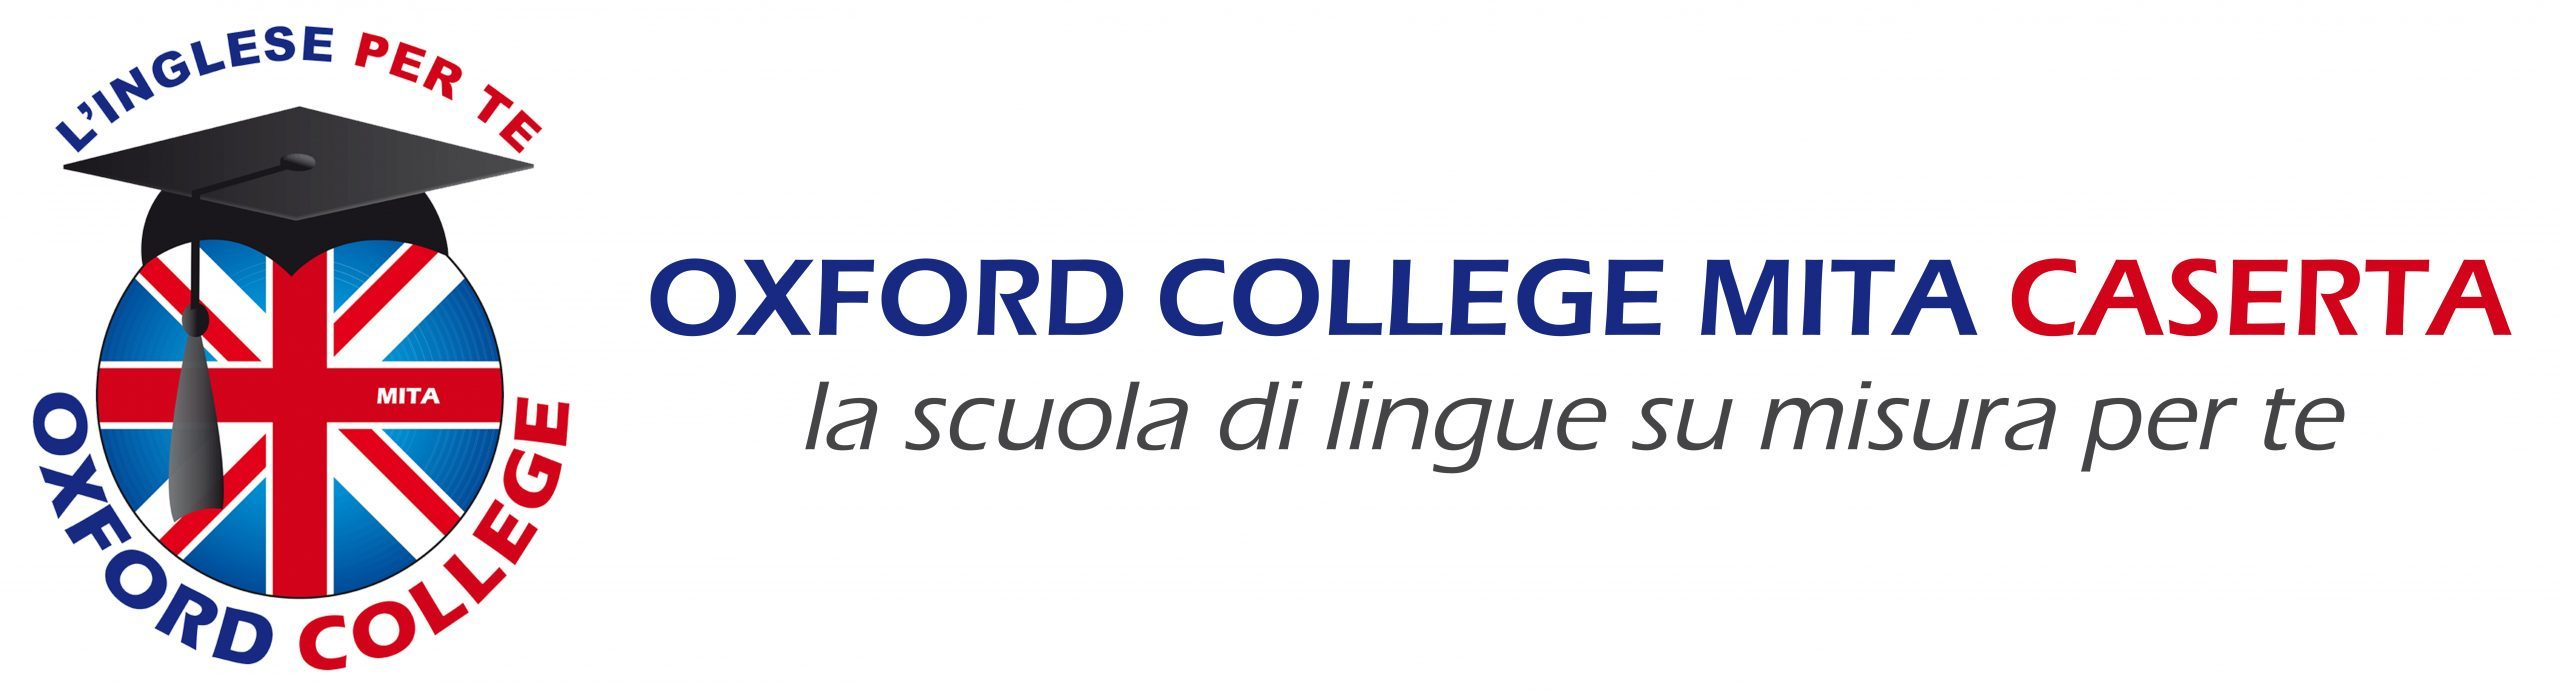 Oxford College Mita Caserta